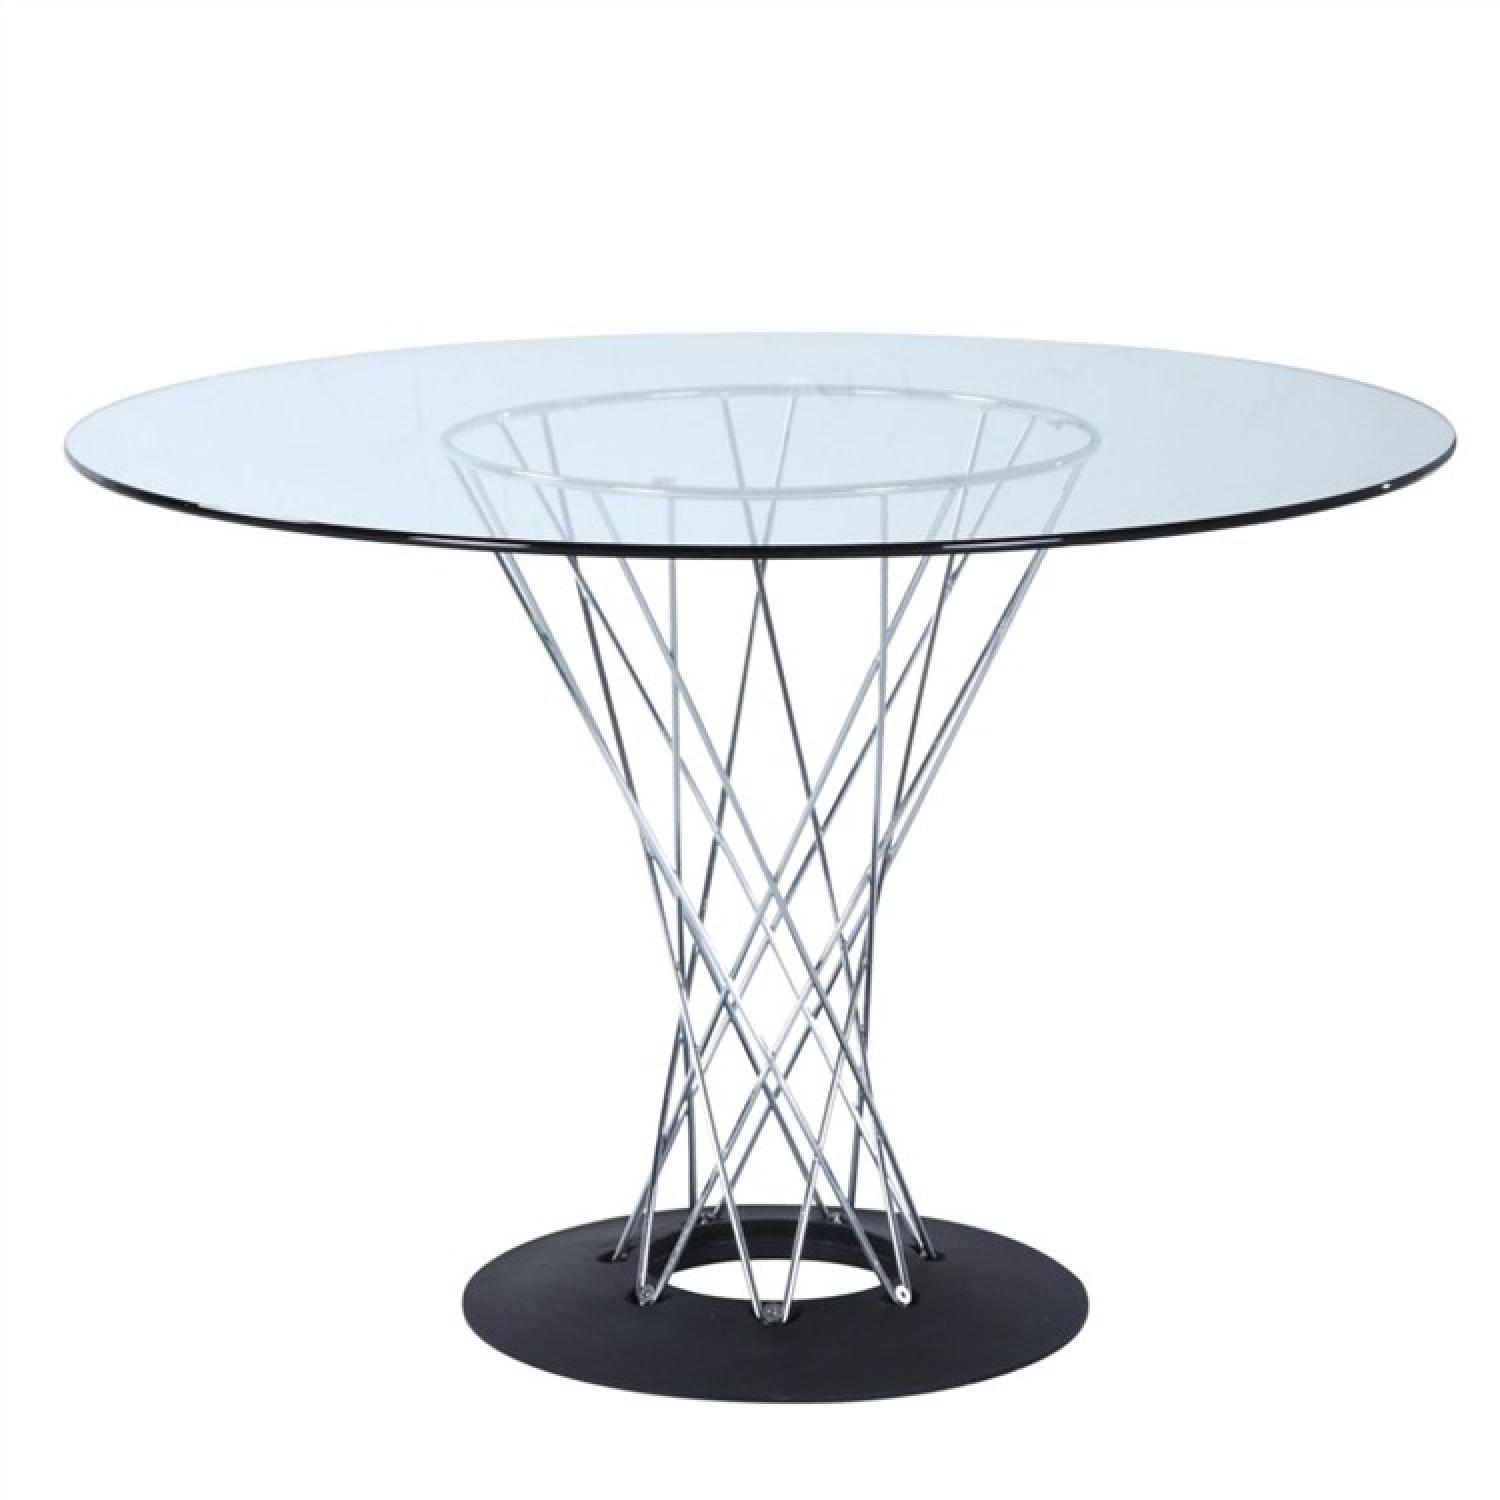 Retro style dining table w tempered glass top chrome for Tempered glass dining table